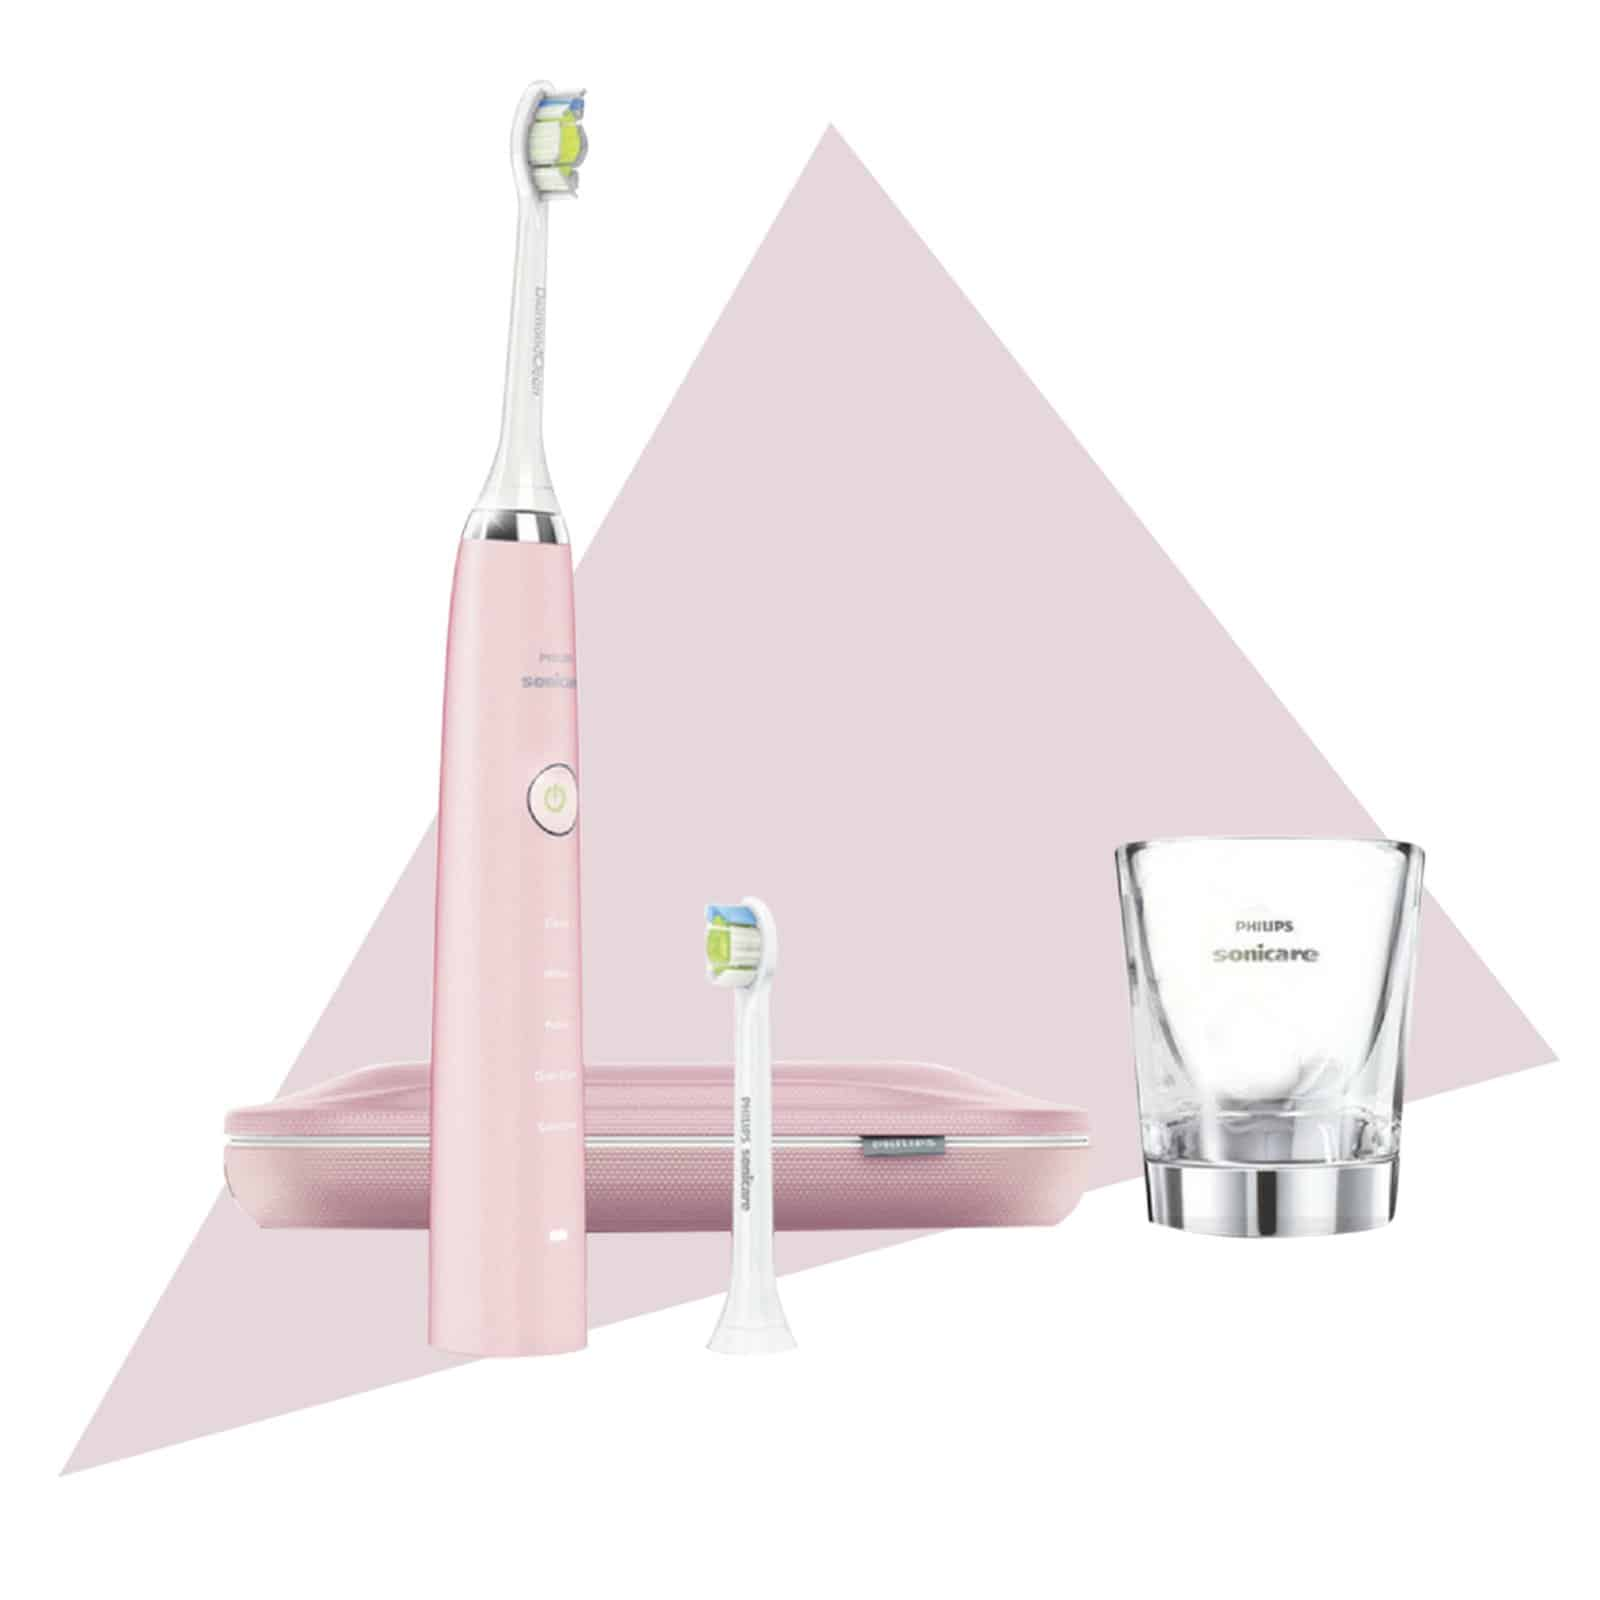 Philips Sonicare DiamondClean Sonic Electric Toothbrush Pink